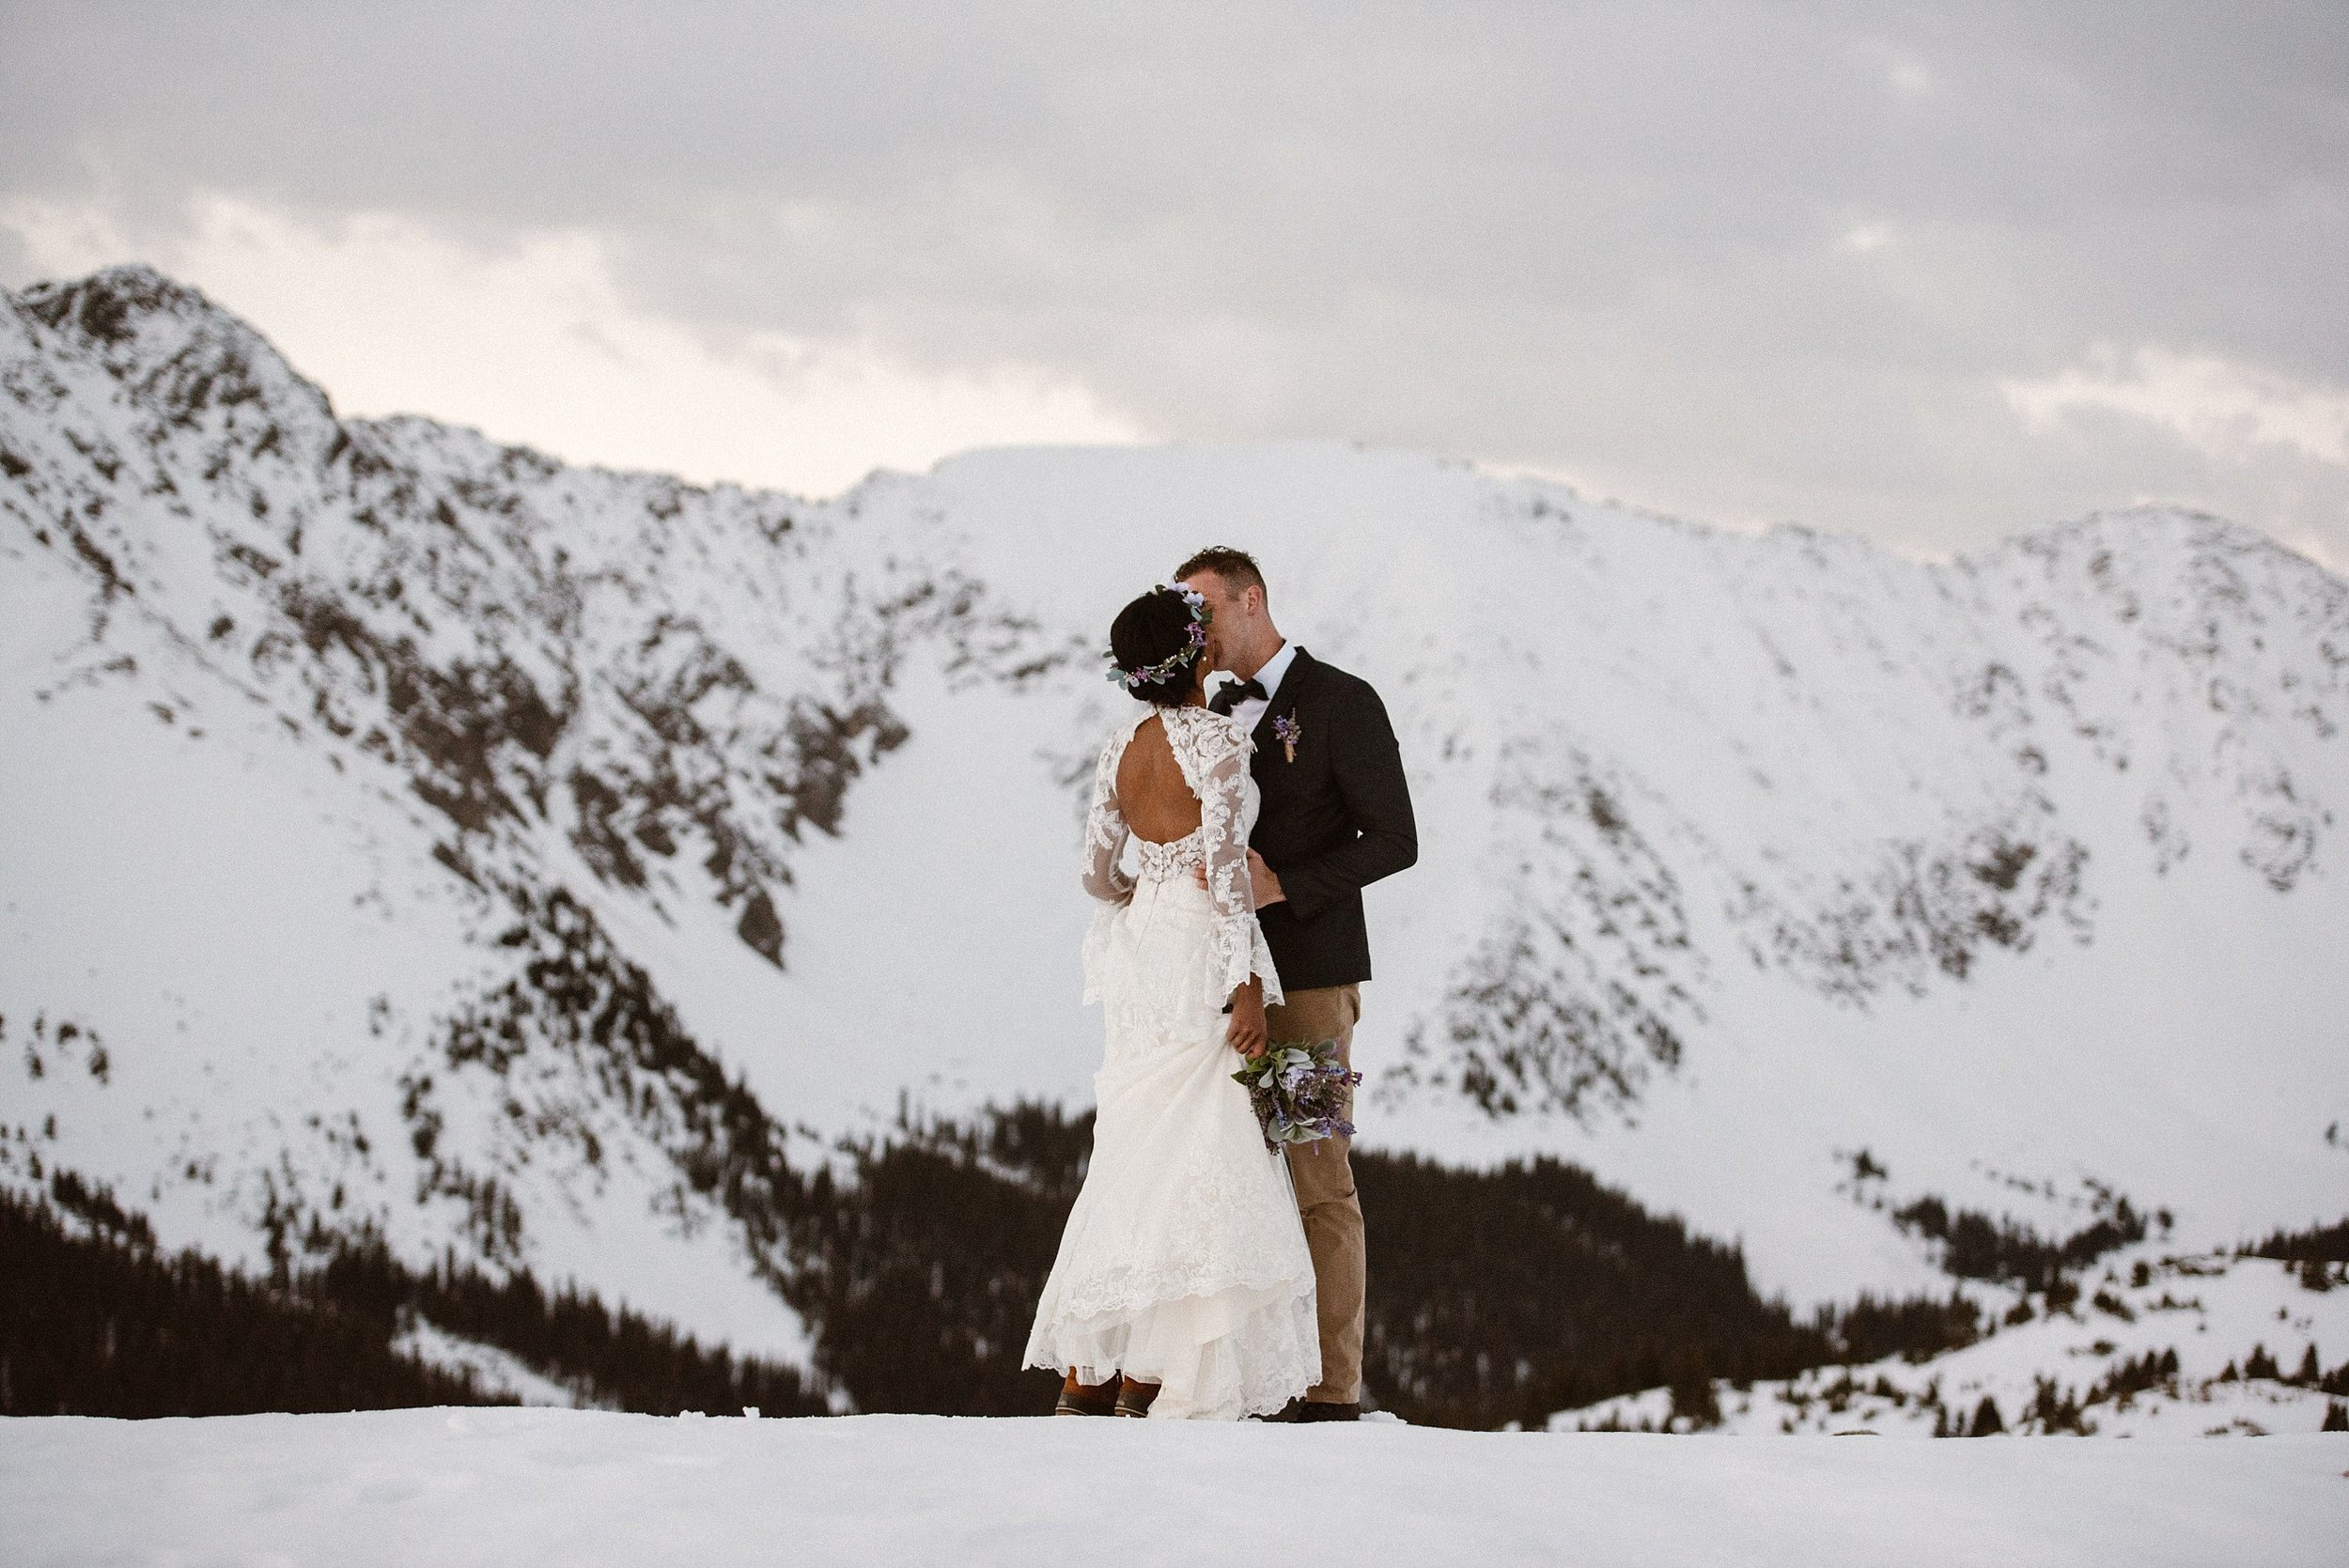 Jared excitement couldn't be contained as he laid eyes on his stunning mountain bride. Donning a simple flower crown and a backless white lace dress, this was the woman he was about profess his love to. Photos of this intimate snowy elopement up Loveland Pass photographed by Maddie Mae.